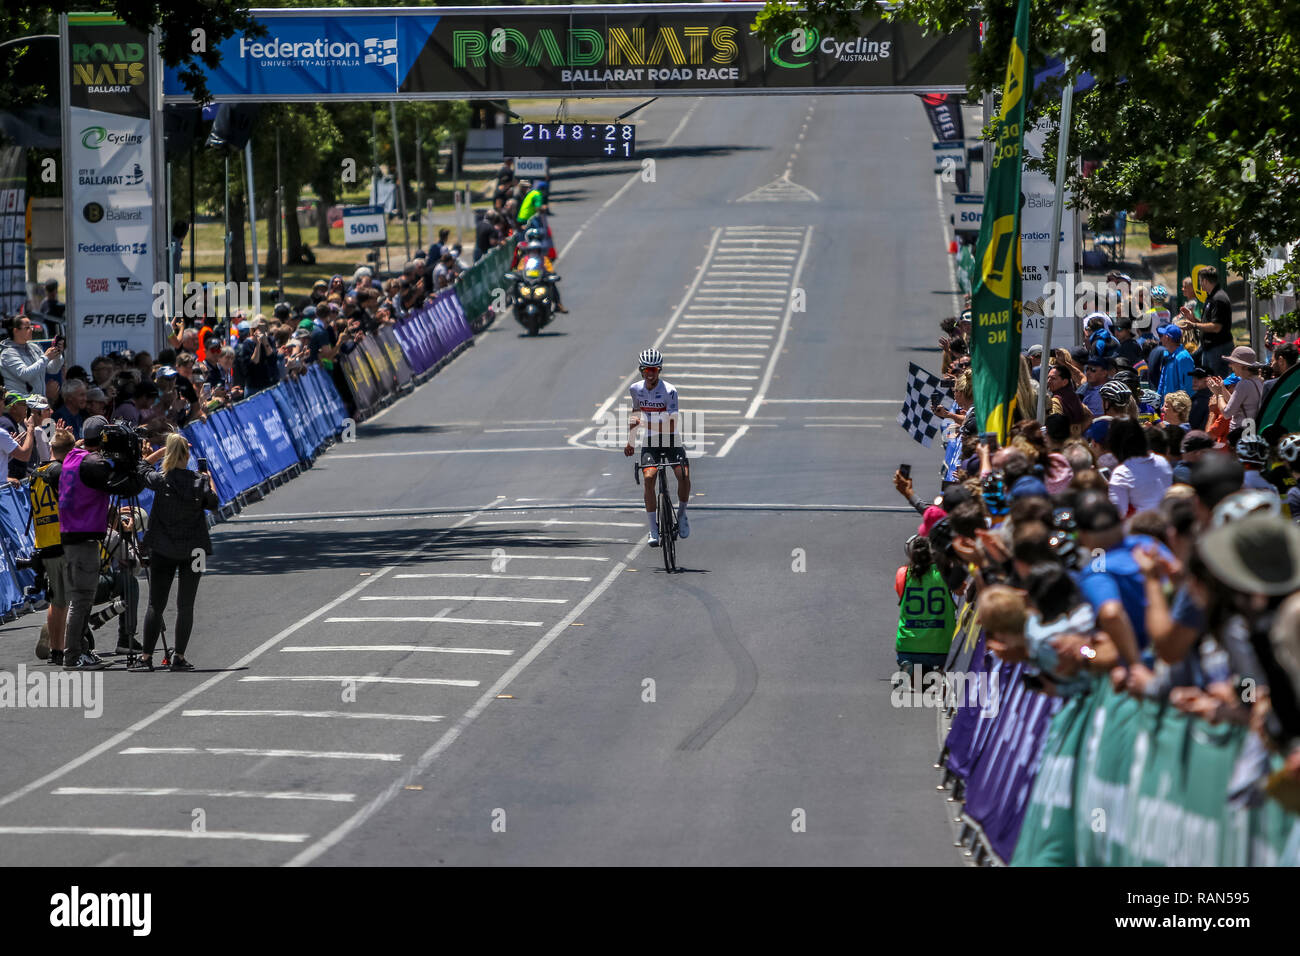 Ballarat, Victoria, Australia. 5th January, 2019. Partick Eddy comes accross the finish line  to win the 2019 Cycling Australia Road National Chapionships Under 19 Mens Road Race.The Race was over 104.4 kms Eddy completed the course in 2hrs48. Credit: brett keating/Alamy Live News - Stock Image